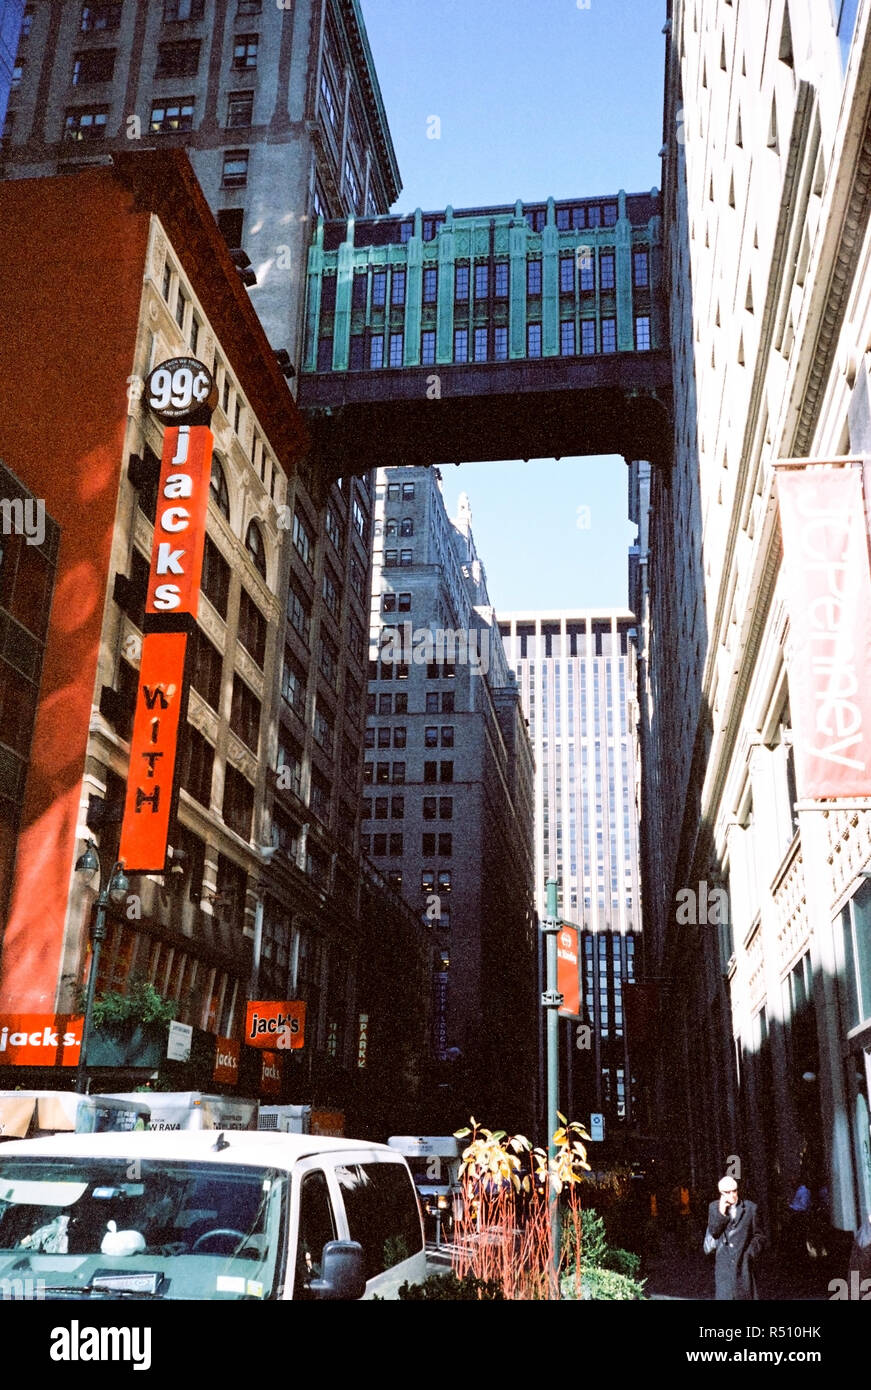 Jacks World 99 Cent Store In Midtown Manhattan And The West 32nd Street Sky Bridge